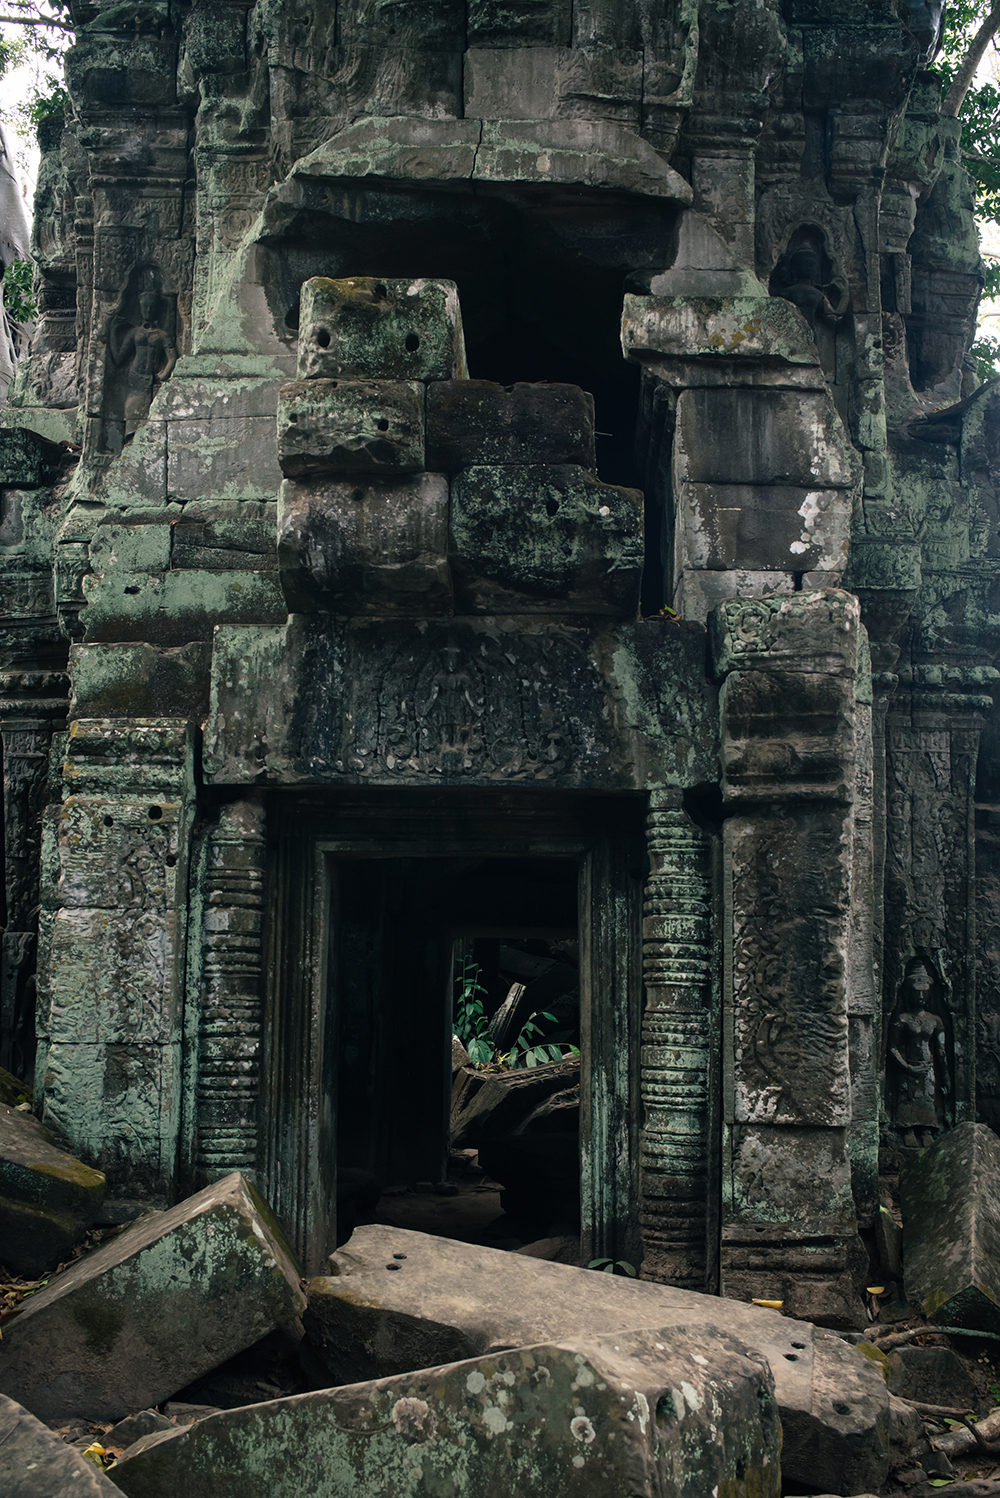 Ta Prohm temple doorway Siem Reap Angkor Cambodia. Crumbling ruins reclaimed by nature and overgrown with trees and plants.